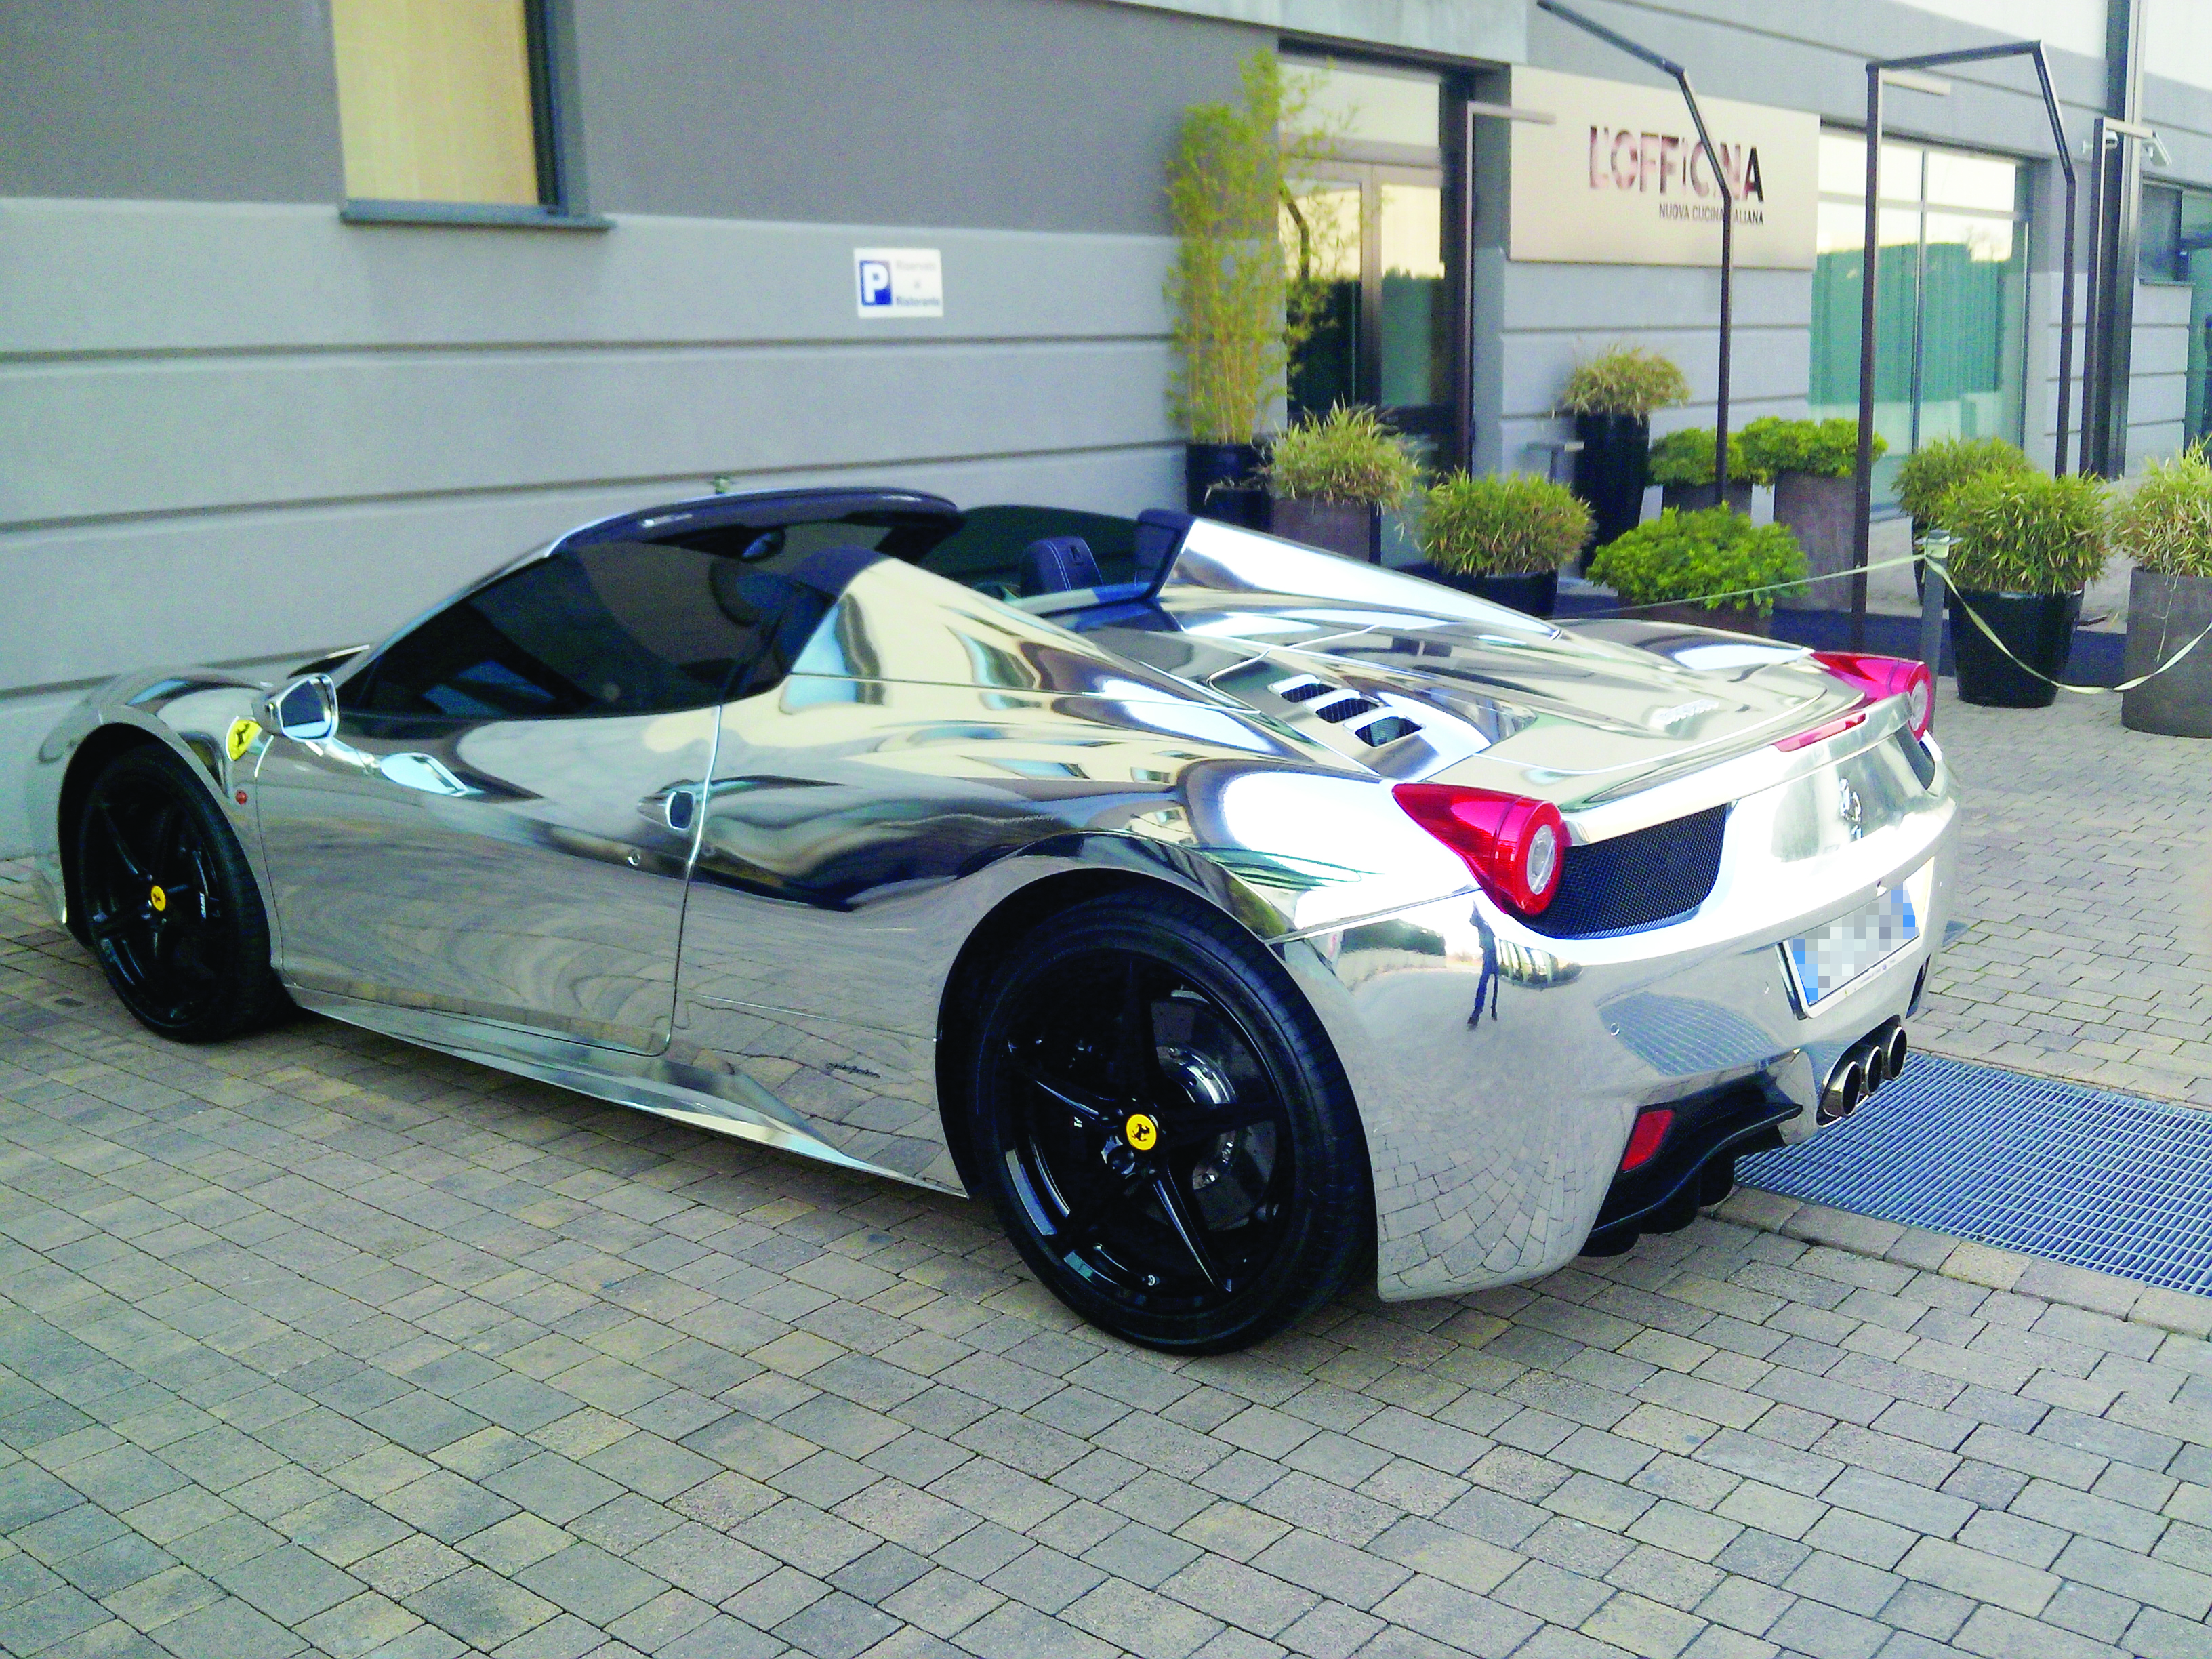 ultimate days experience groupon exotics looking track day exotic photo ferrari